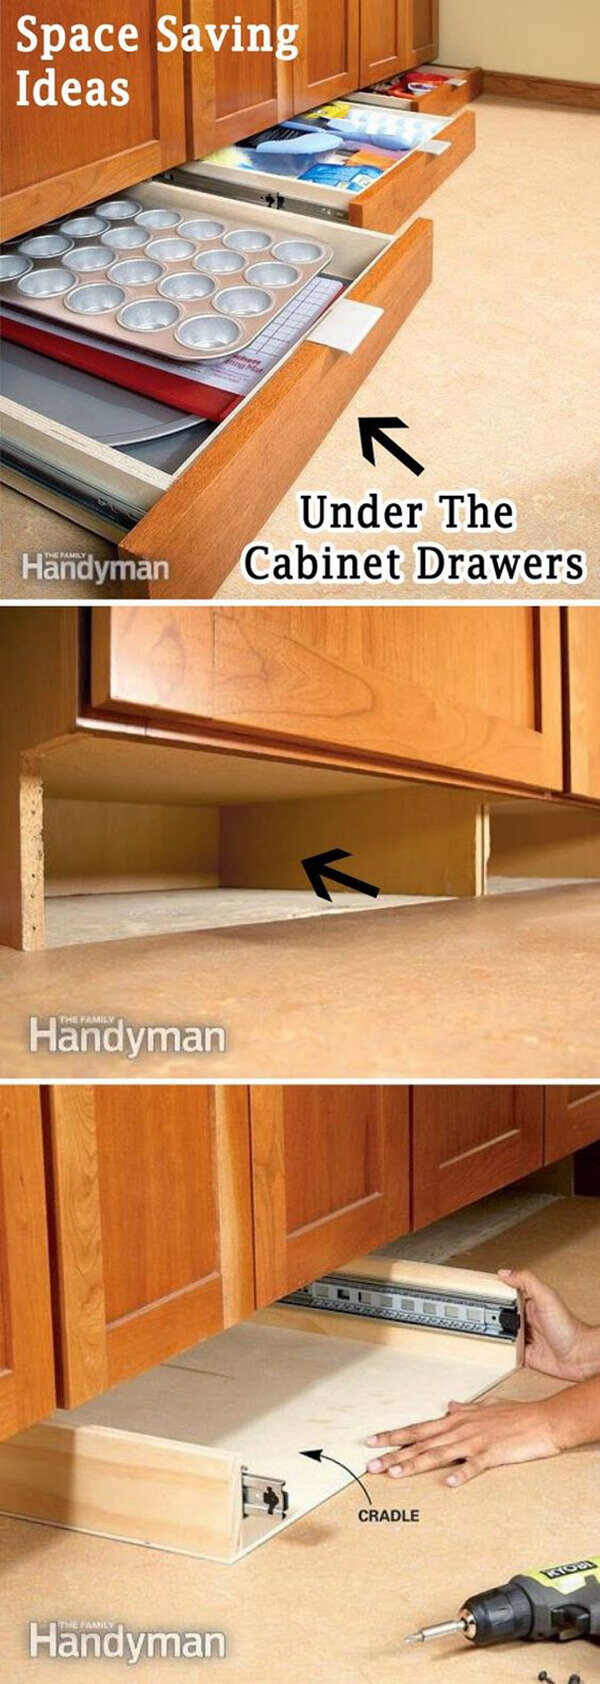 Storage Ideas for Small Spaces - Maximize the Space Beneath Kitchen Cabinets - Harpmagazine.com